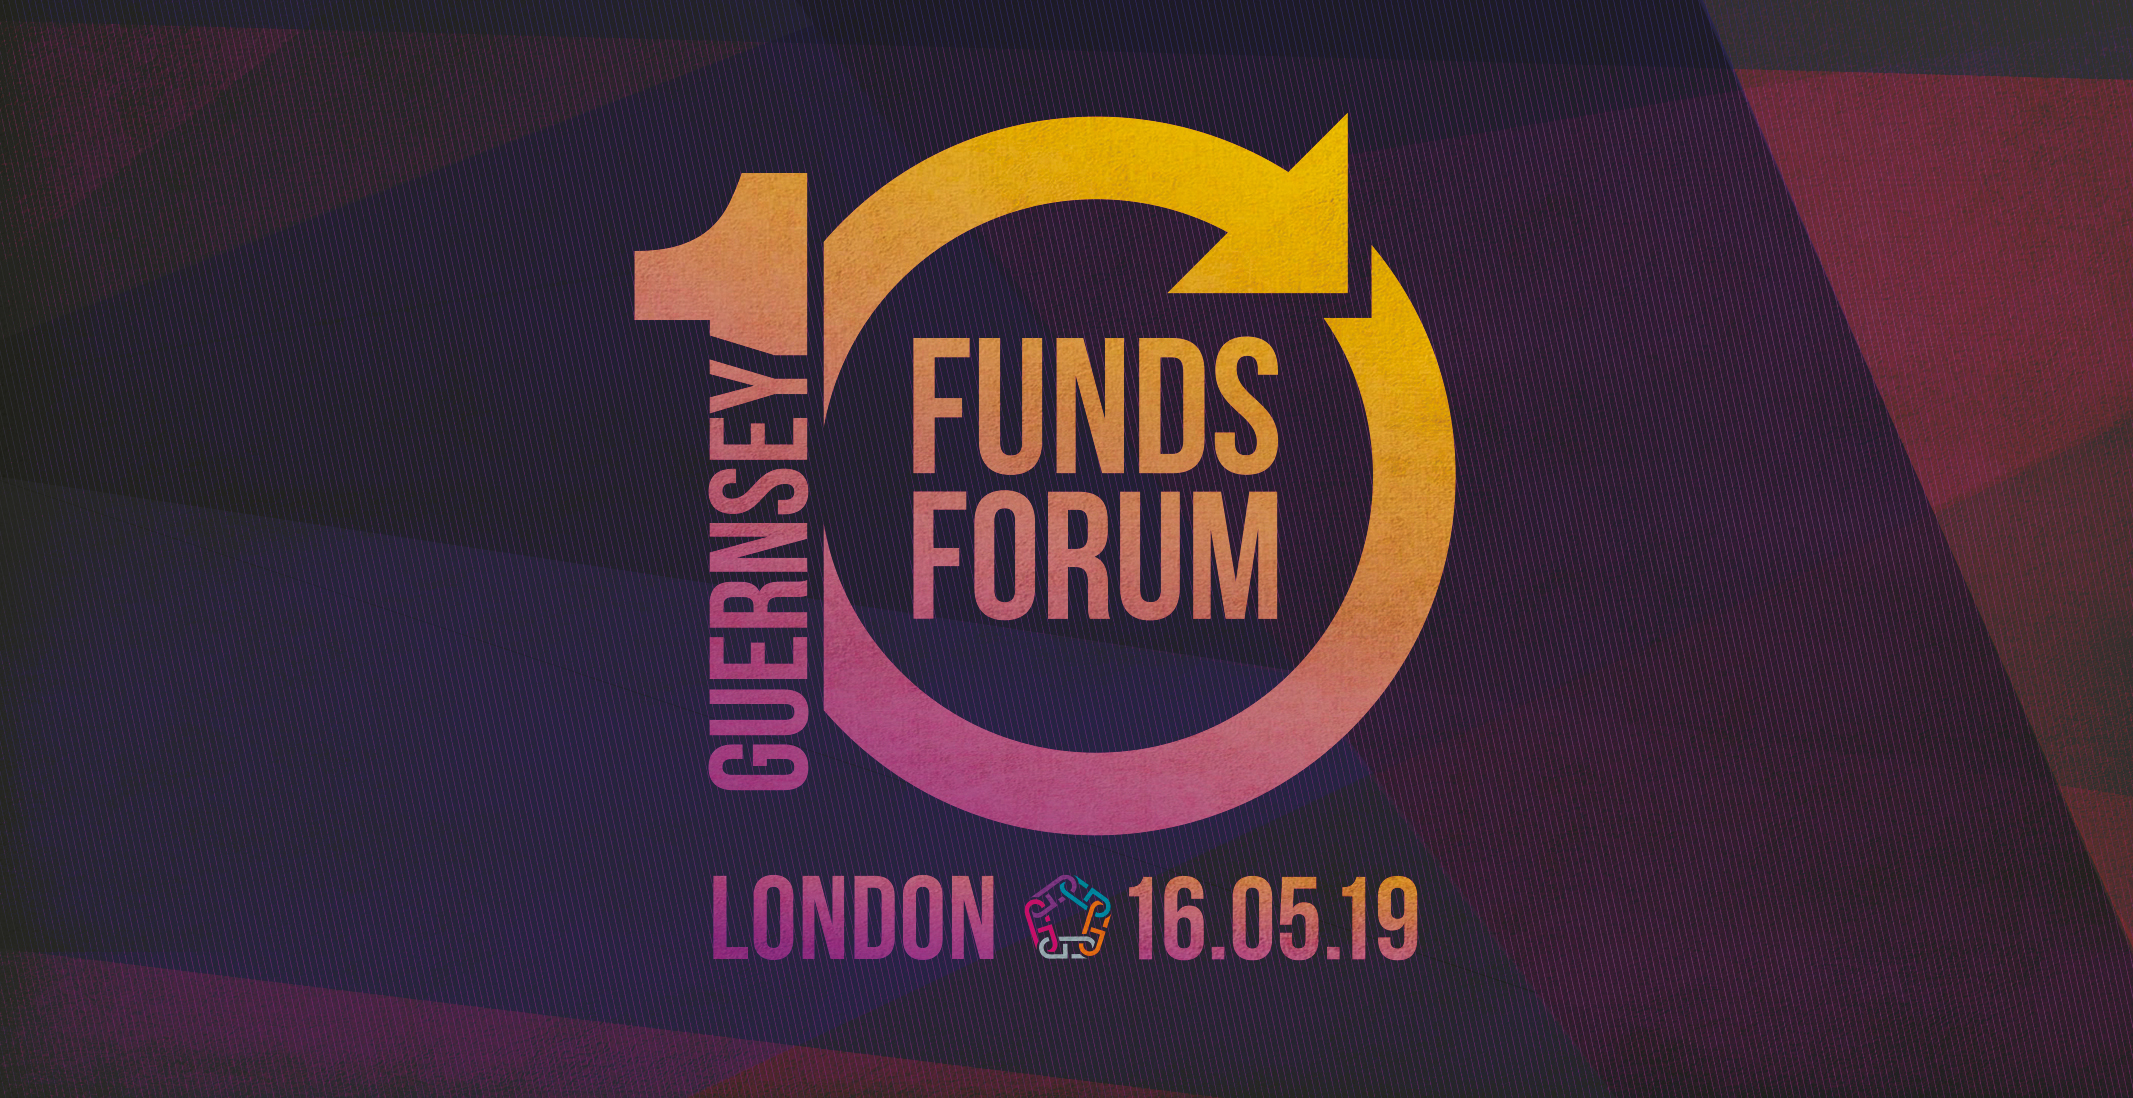 Guernsey Funds Forum